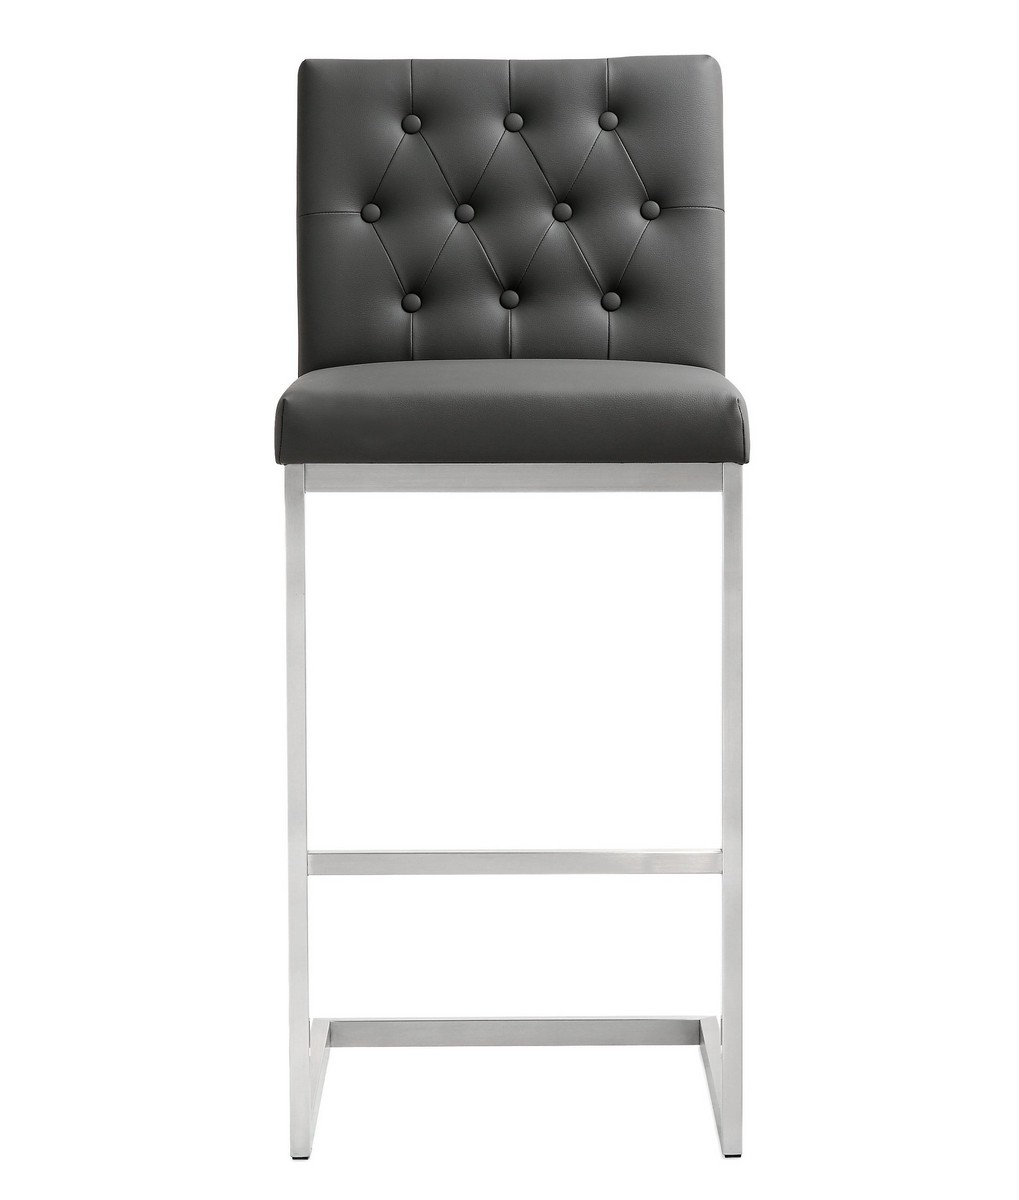 TOV Furniture Helsinki Grey Stainless Steel Barstool (Set of 2)